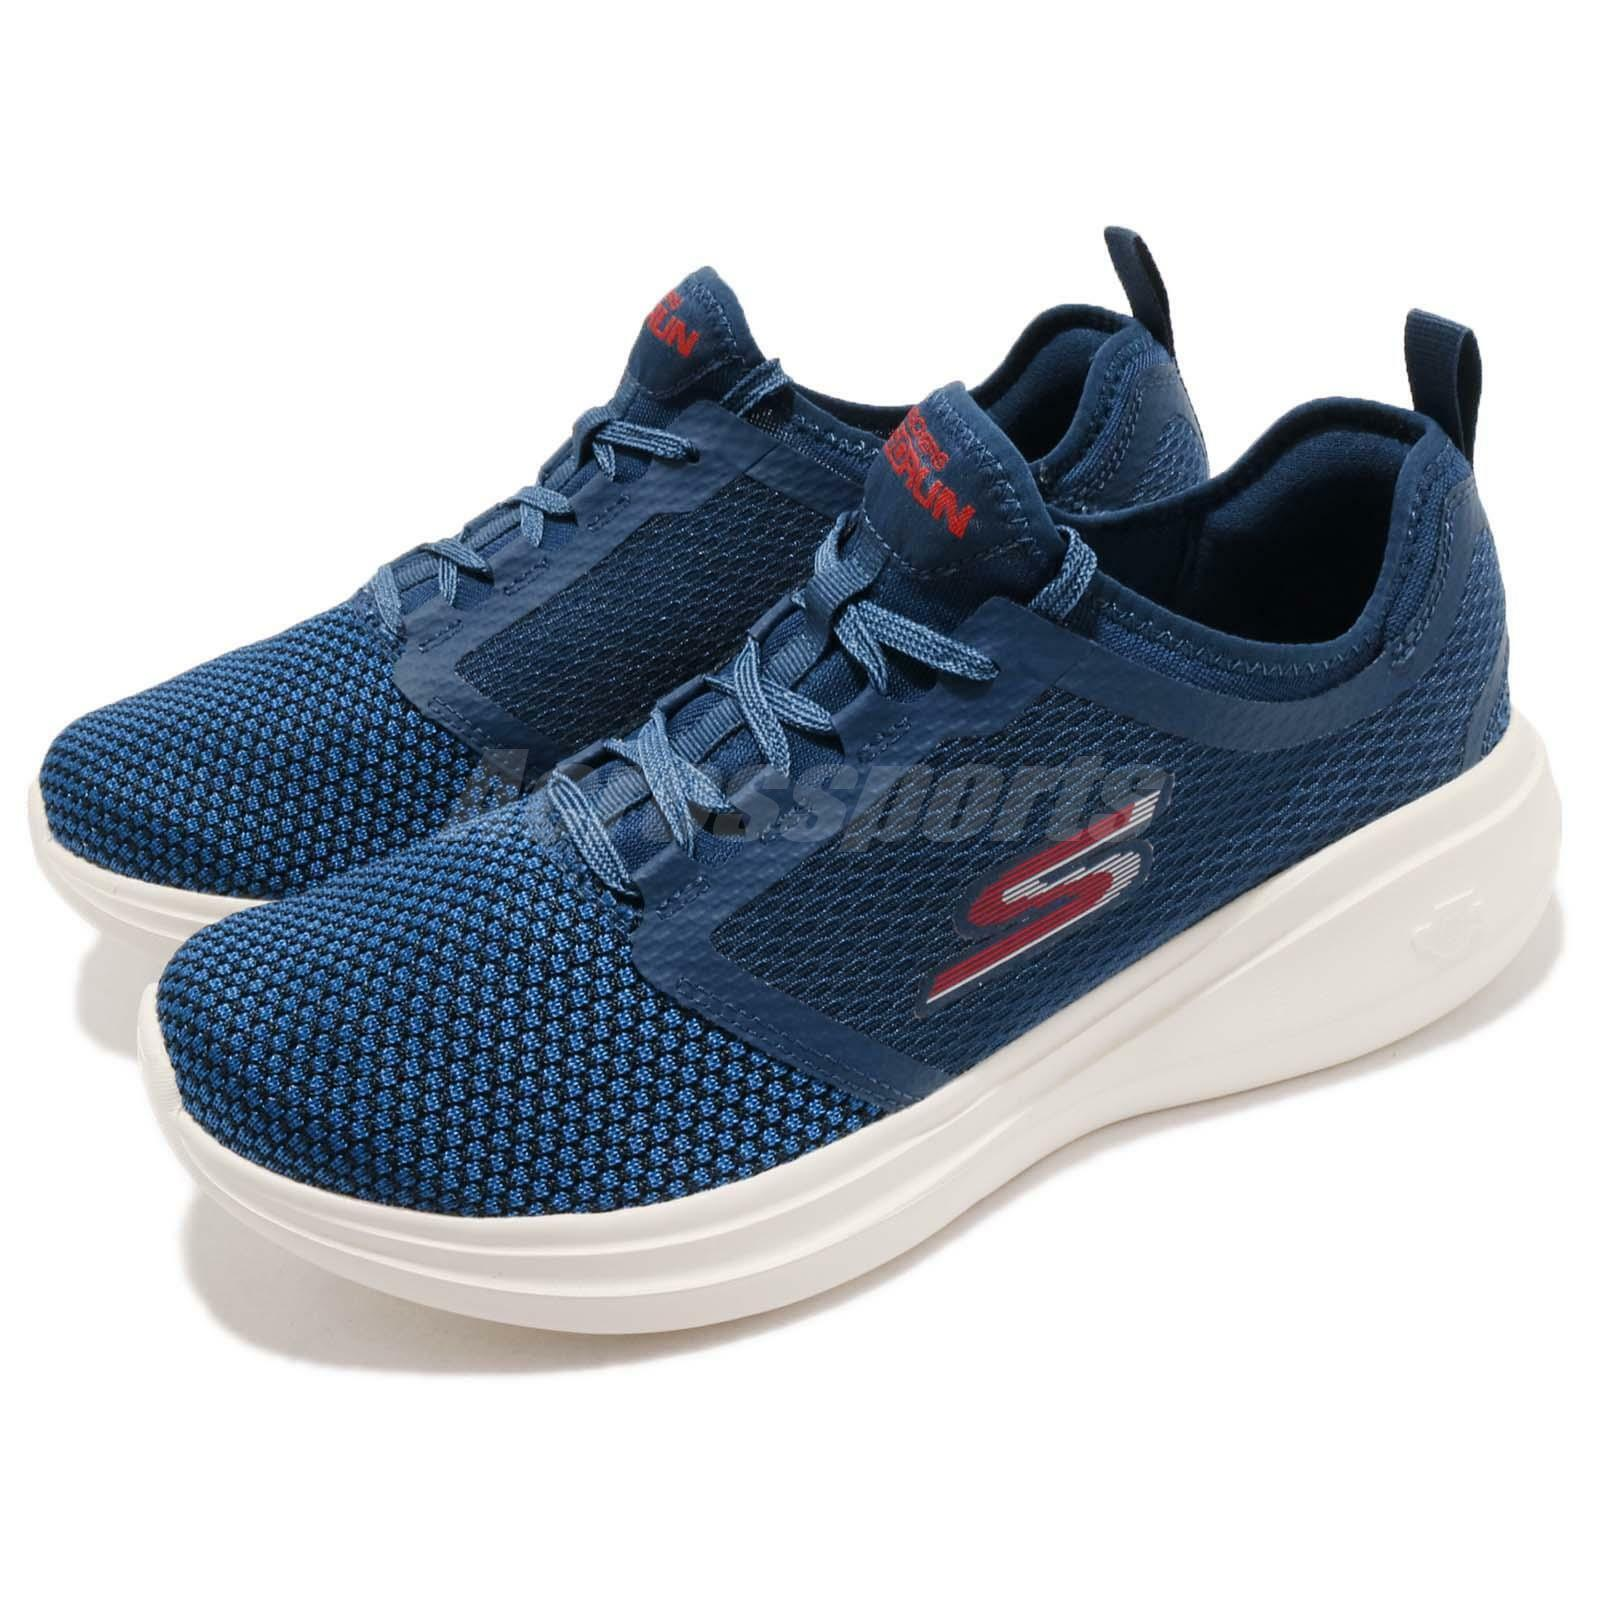 Skechers Go Run Fast Invigorate Navy blueee Red White Men Running shoes 55102-NVRD